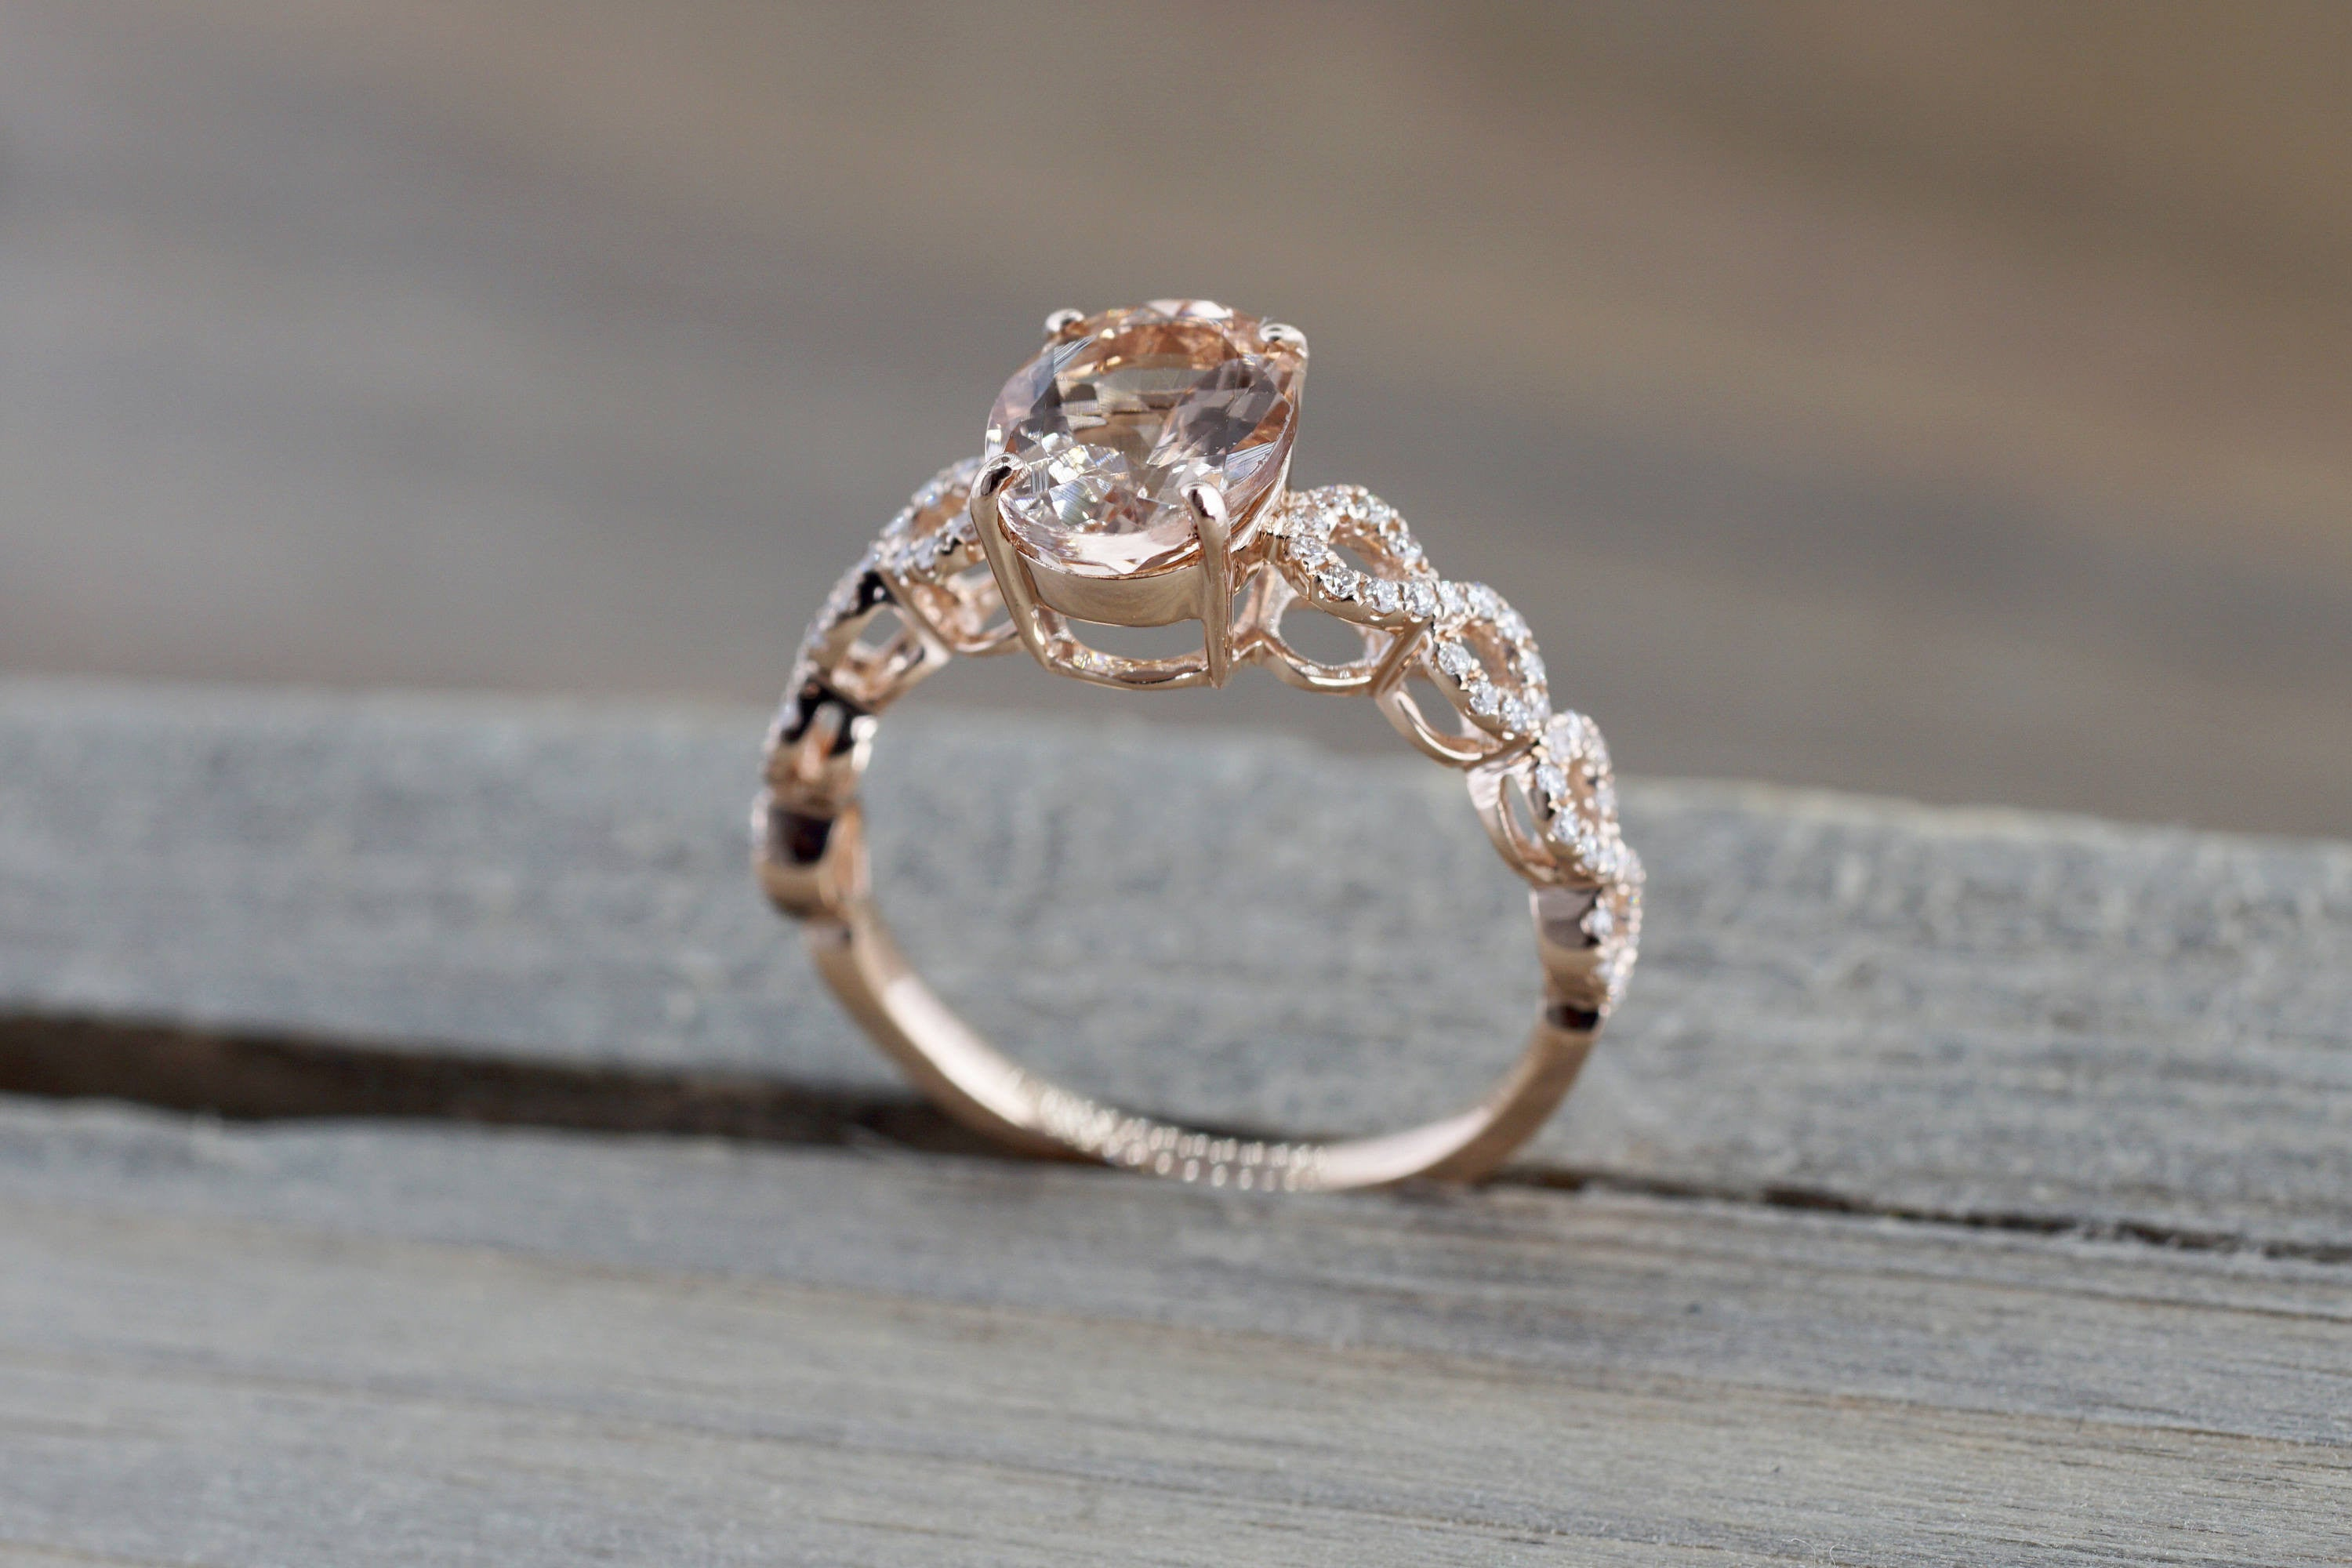 graff an of ring double twin with oval collections pav engagement diamonds by frame diamond shape a constellation cut